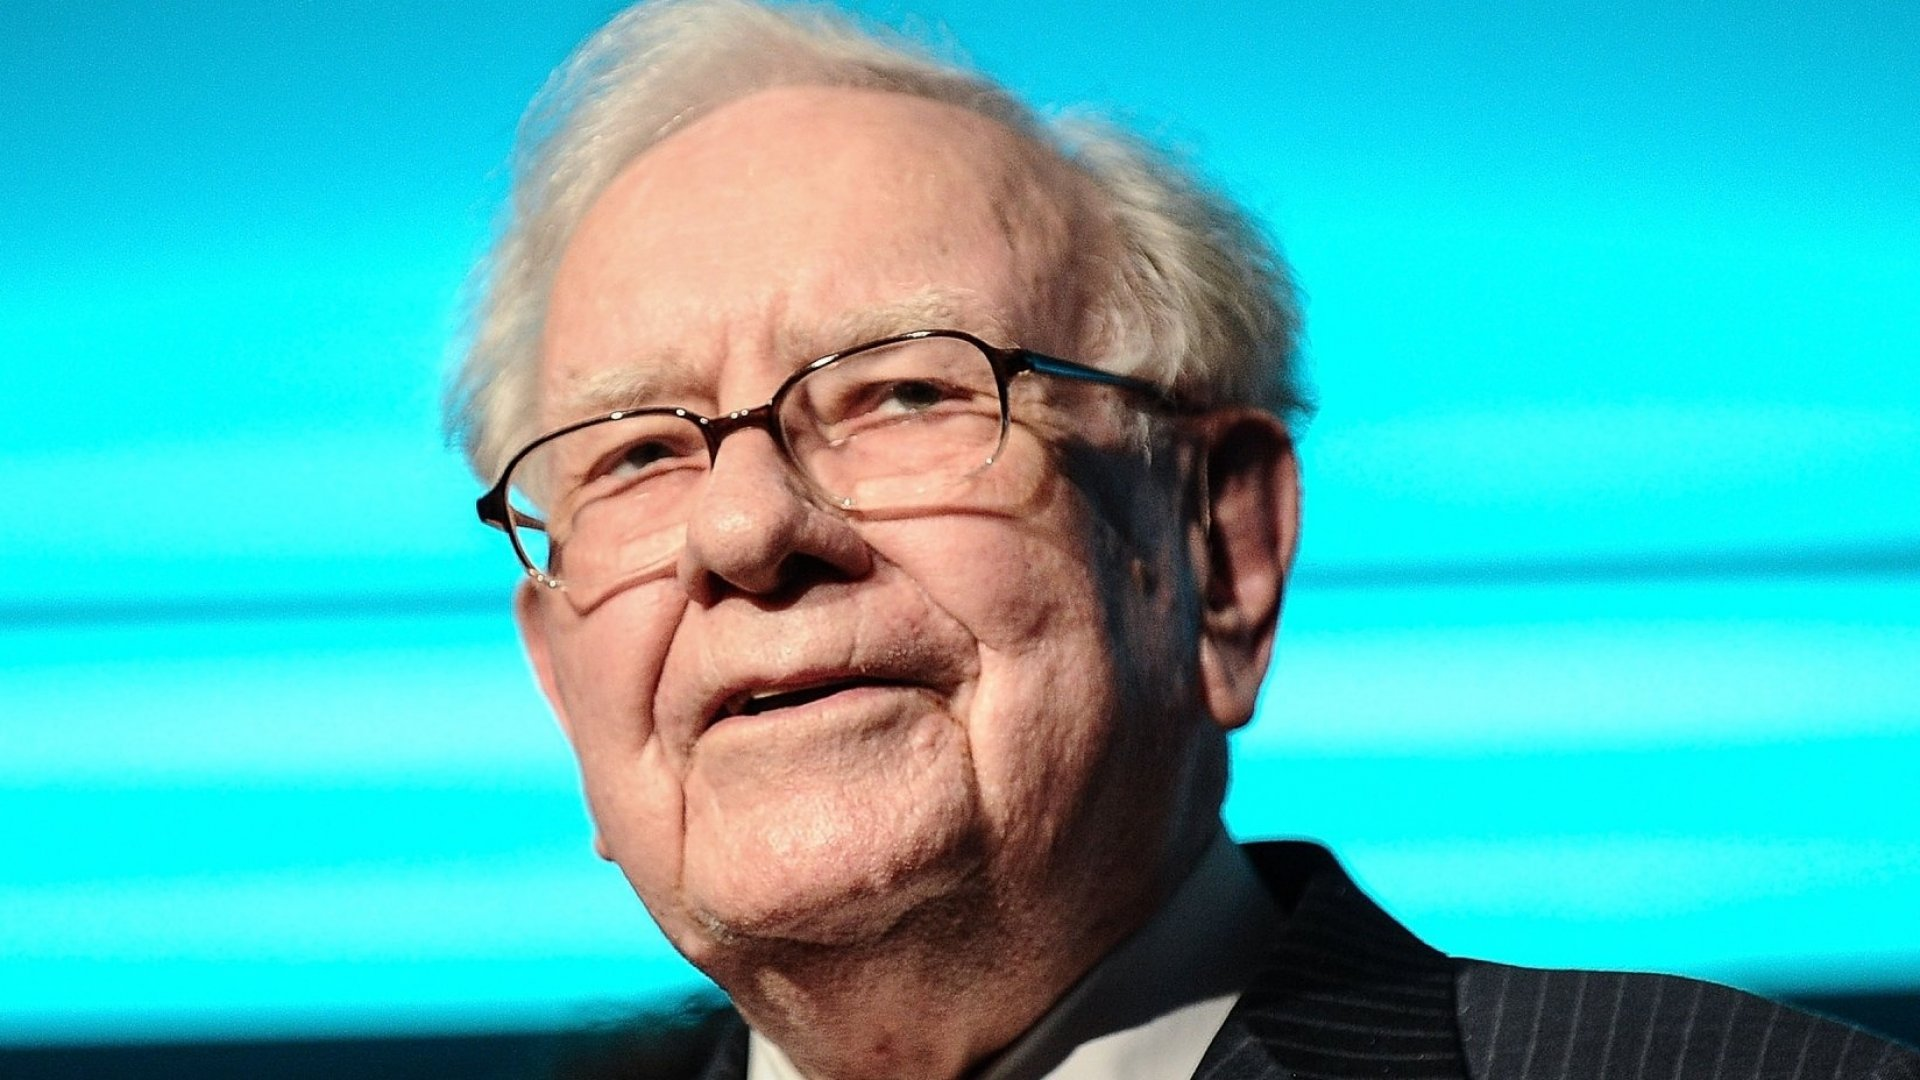 Sharpen Your Communication Skills With This Mental Shortcut That Warren Buffett Used in His Annual Letter